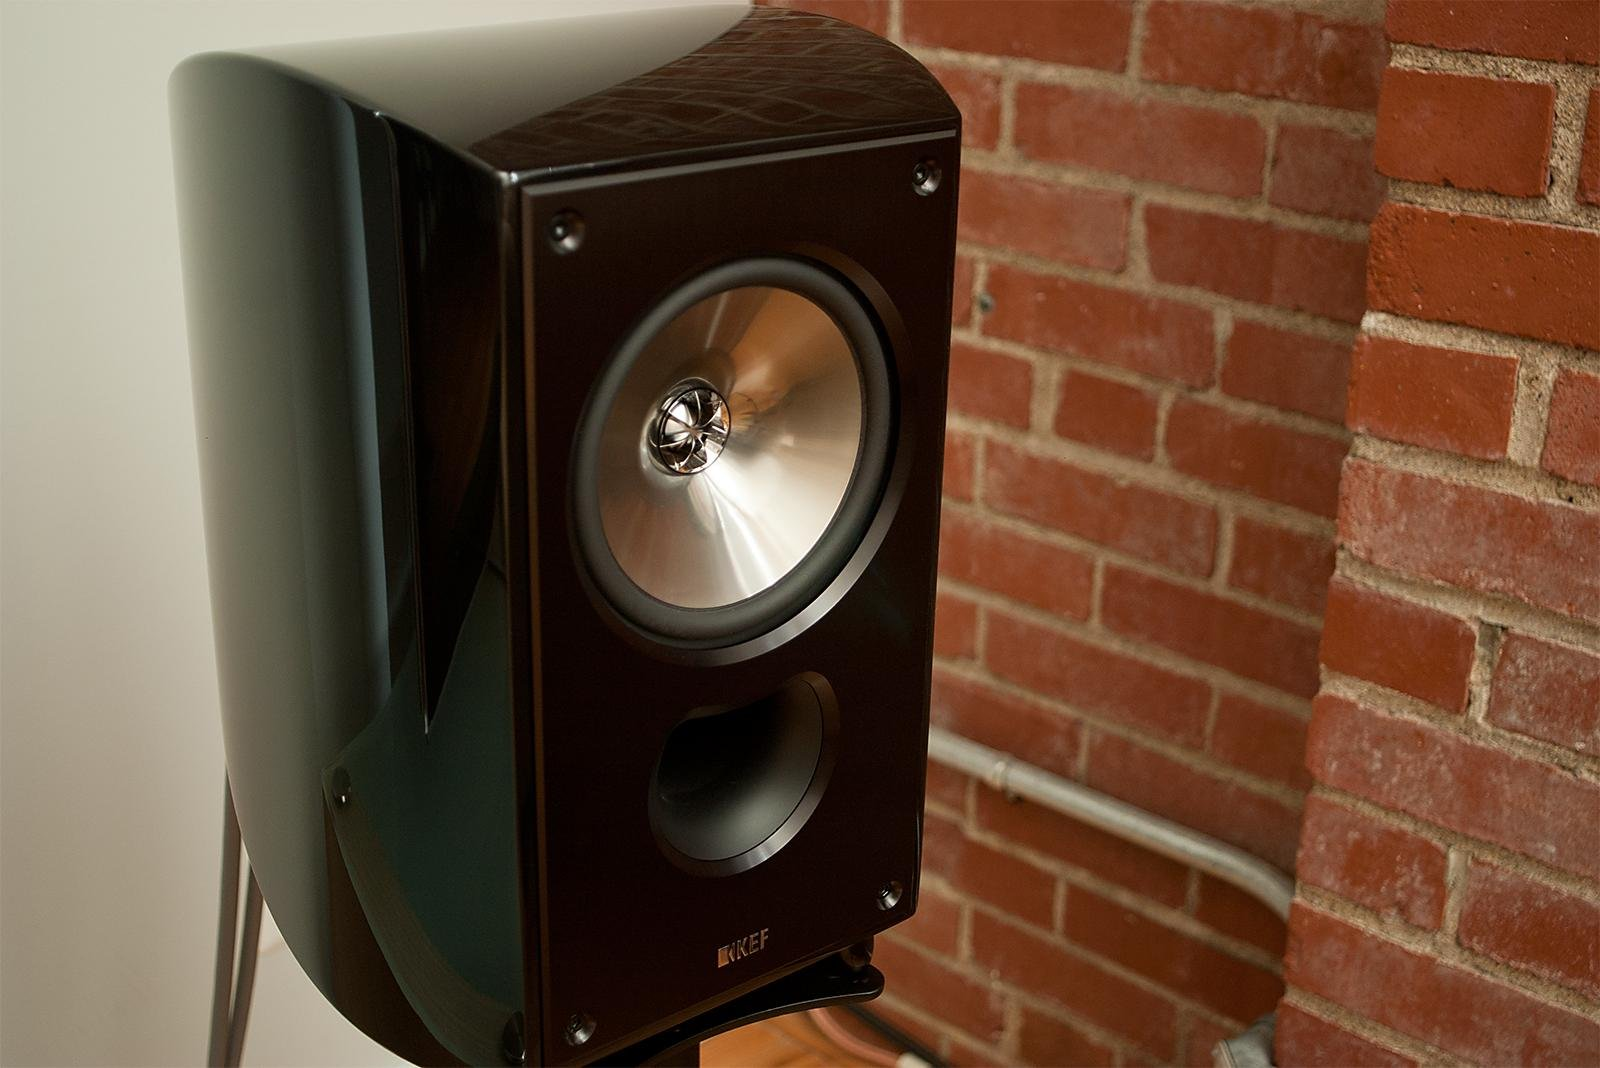 kef 3005. gallery with a few more images here: http://imgur.com/a/ltnxw kef 3005